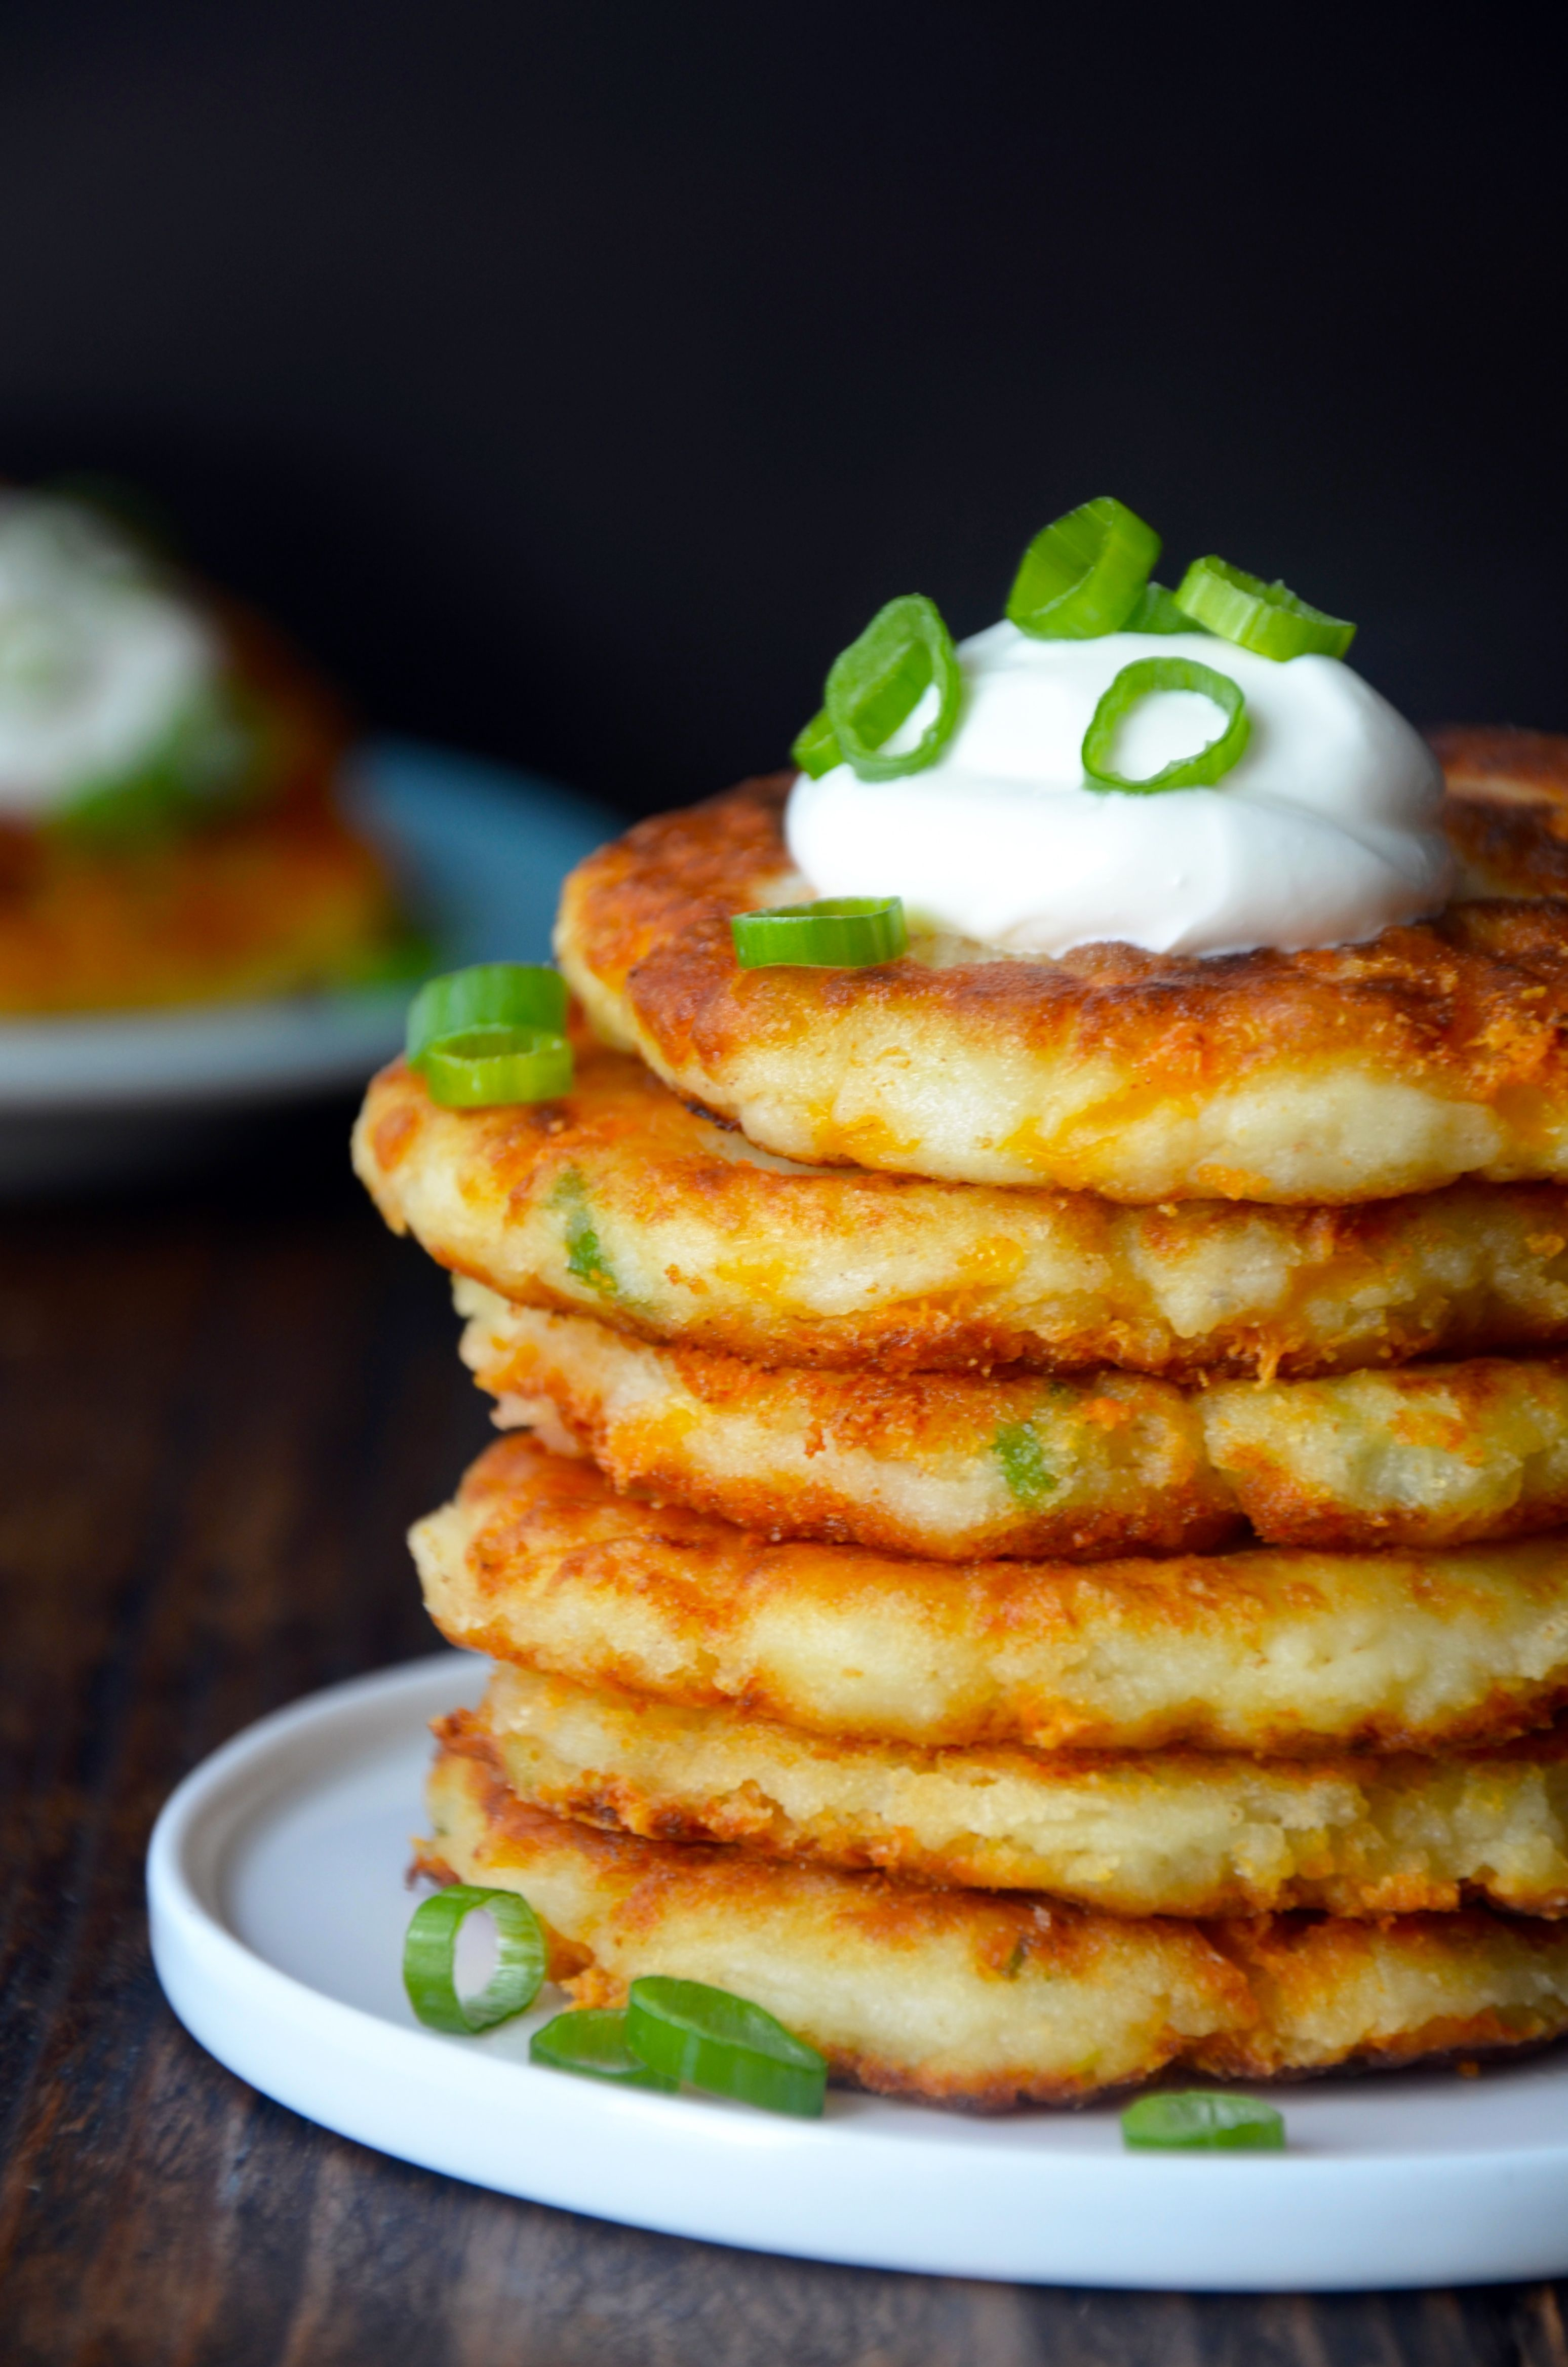 15 Easy Potatoes Recipes You Should Serve At Your St. Patricks Day Dinner